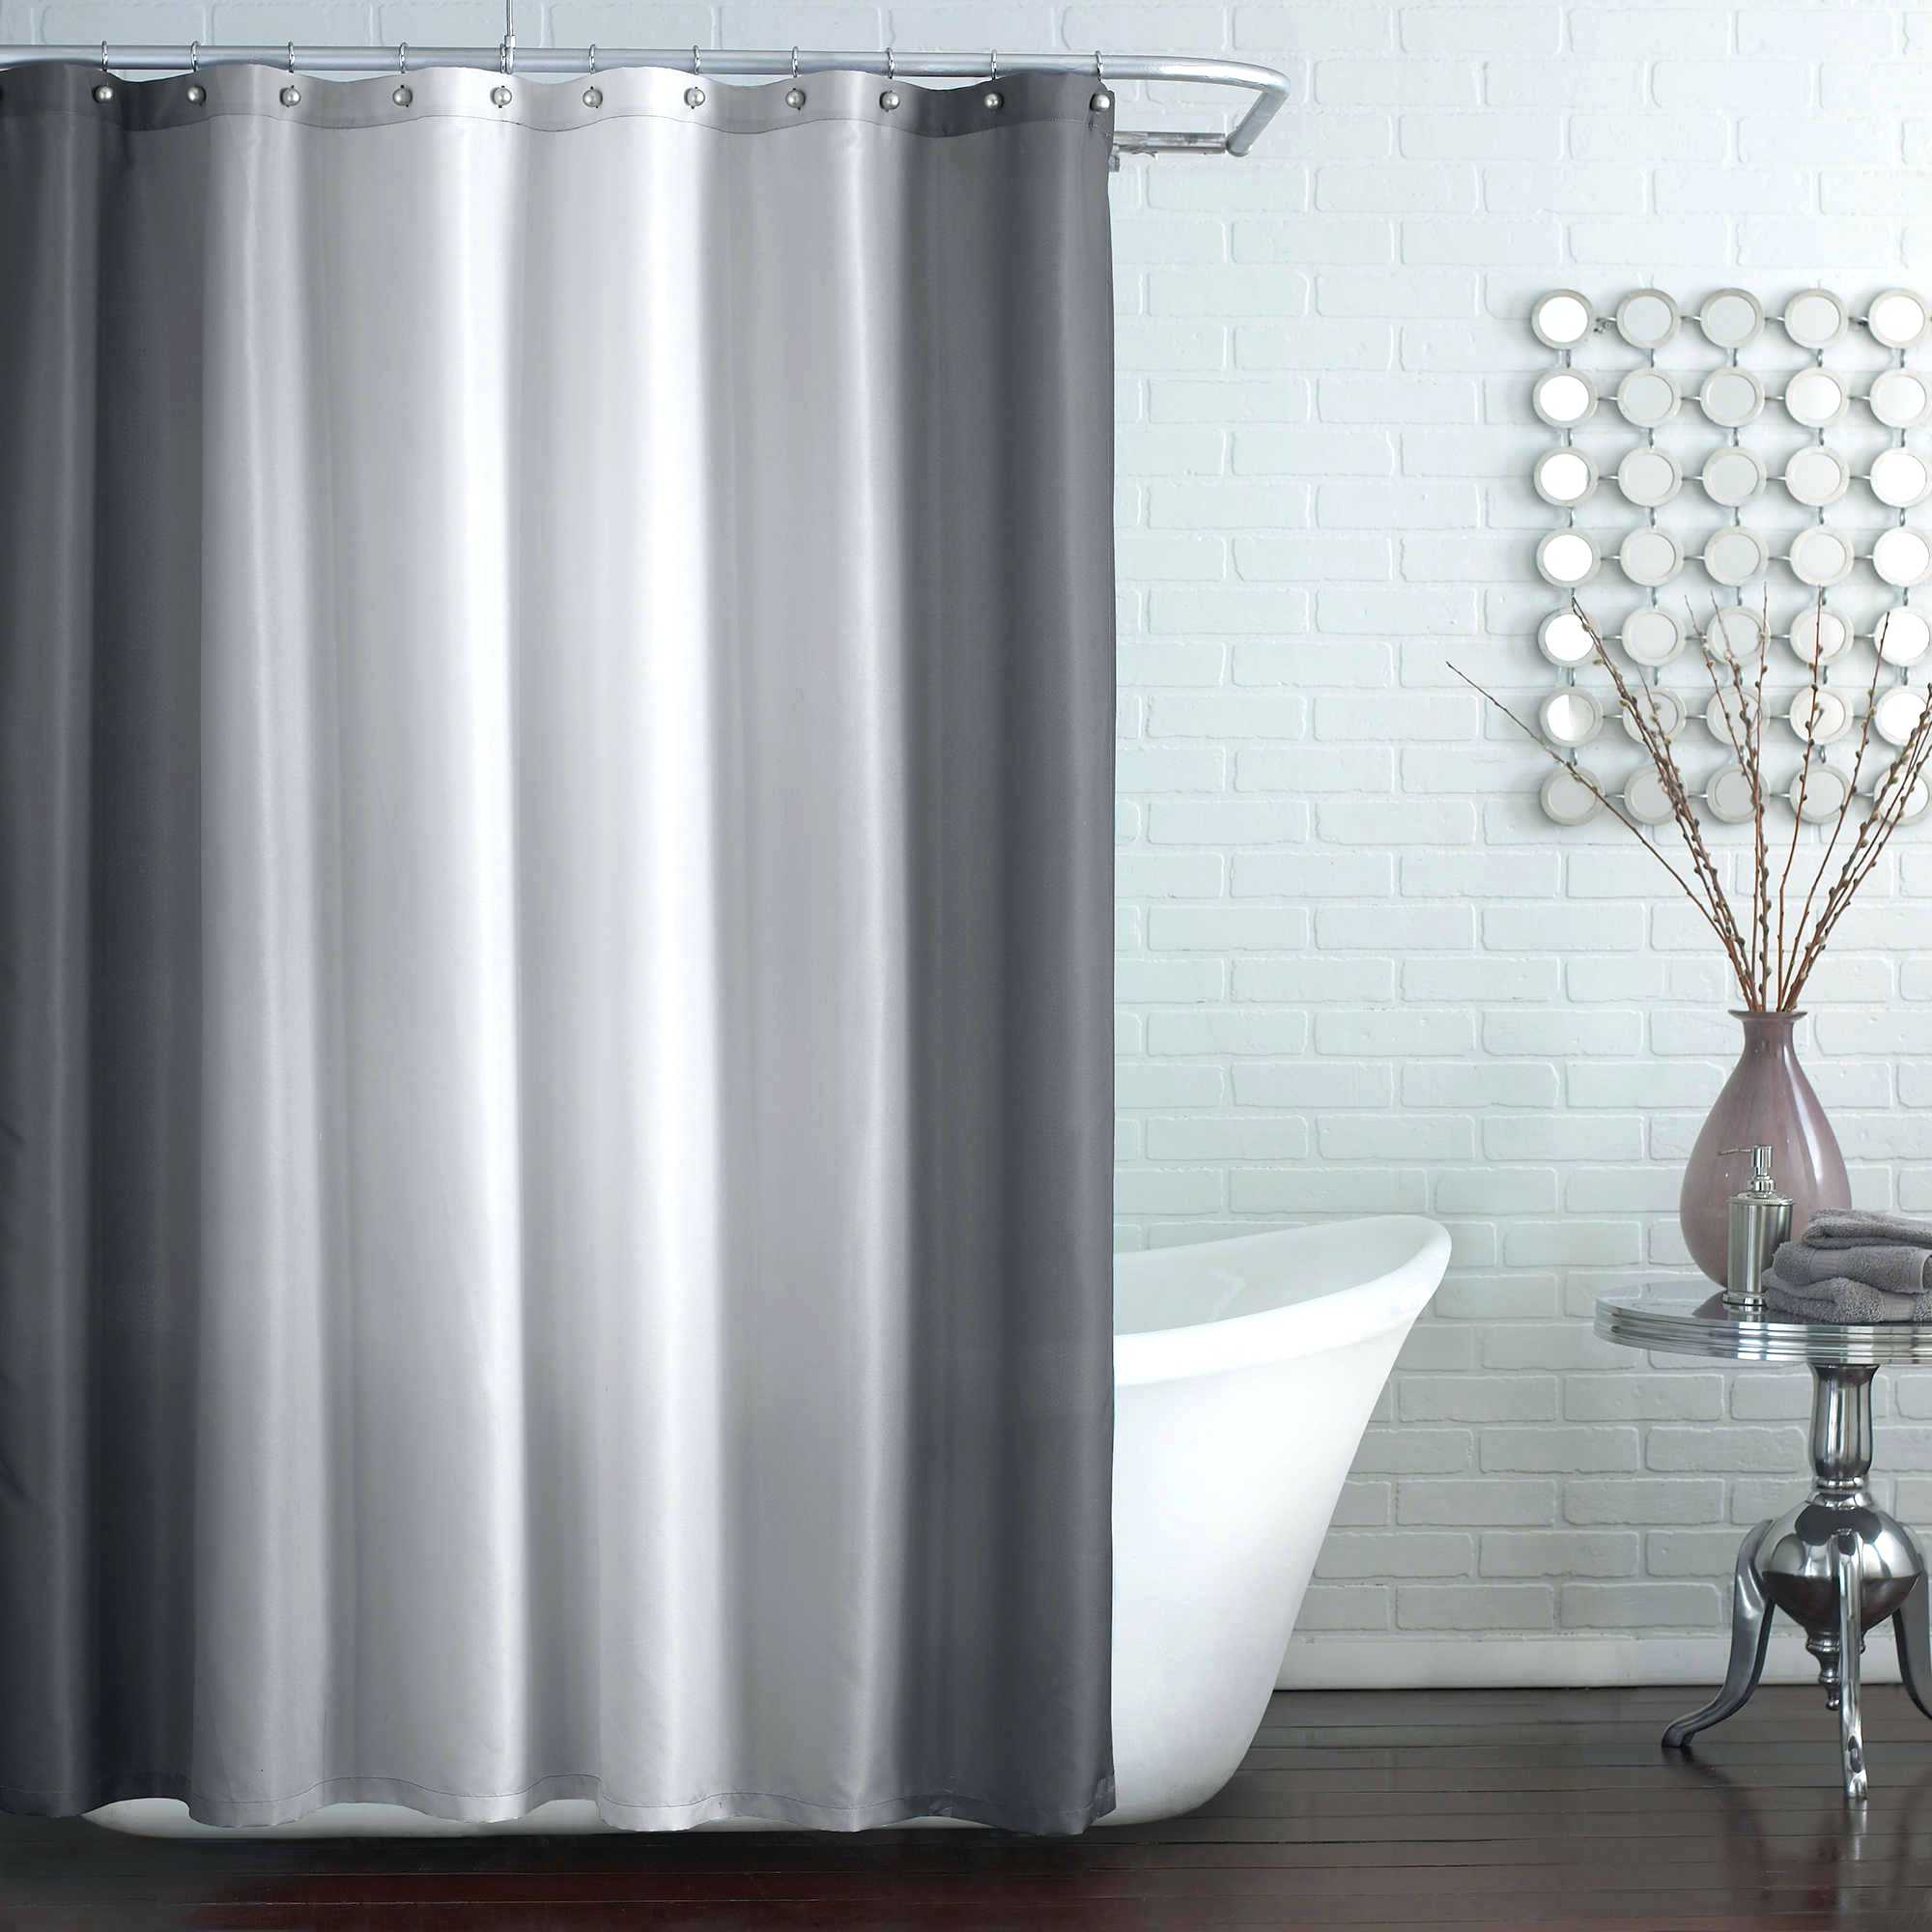 84 Long Shower Curtain Liner Shower Curtains Design throughout sizing 2000 X 2000